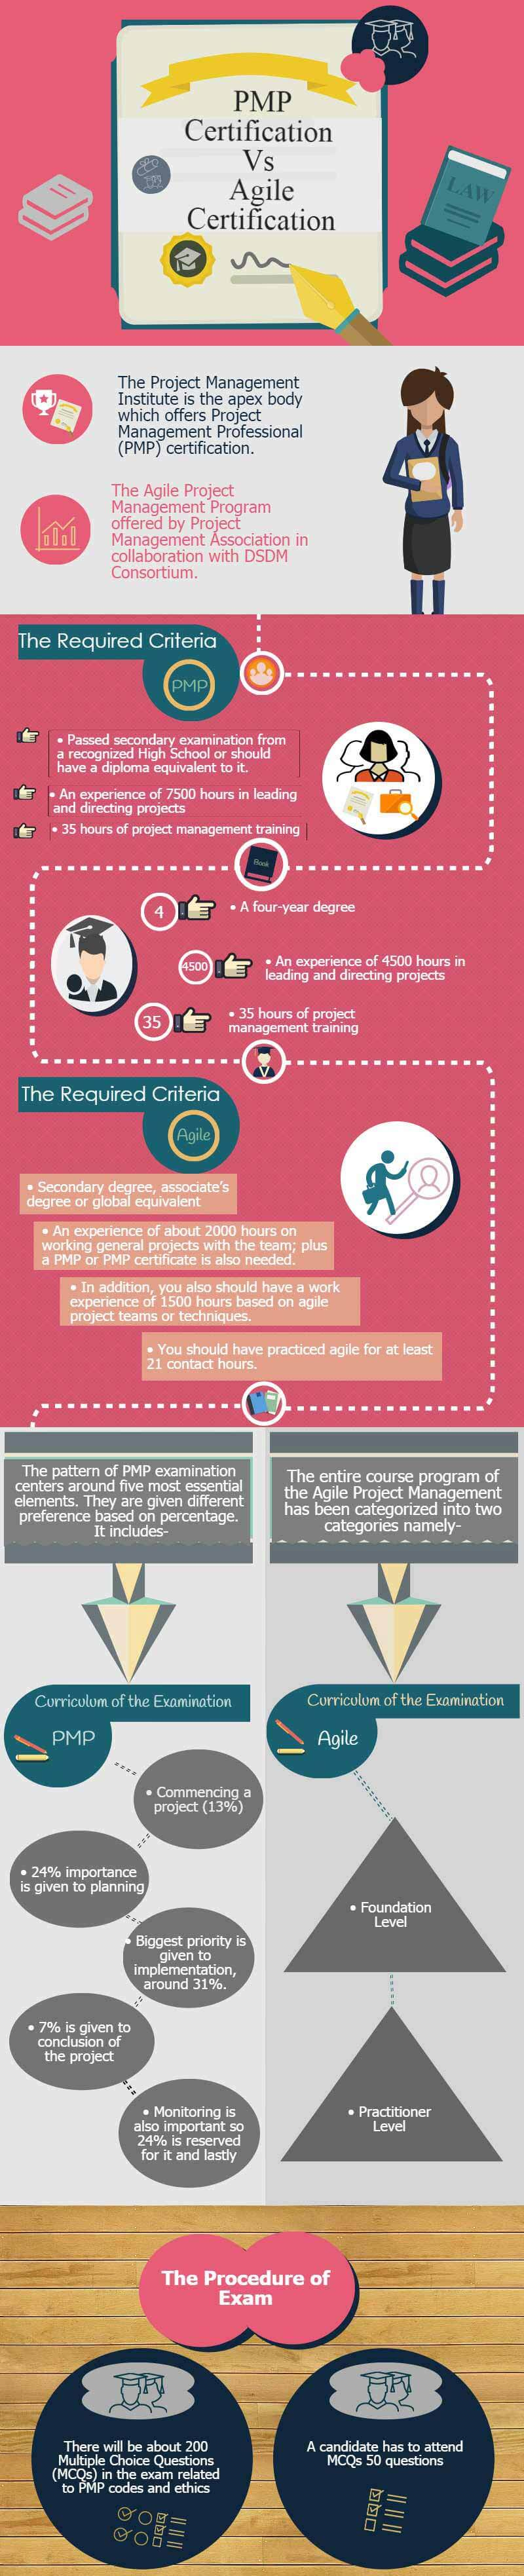 Pmp vs agile which certification is best infographics pmp vs agile certification xflitez Choice Image